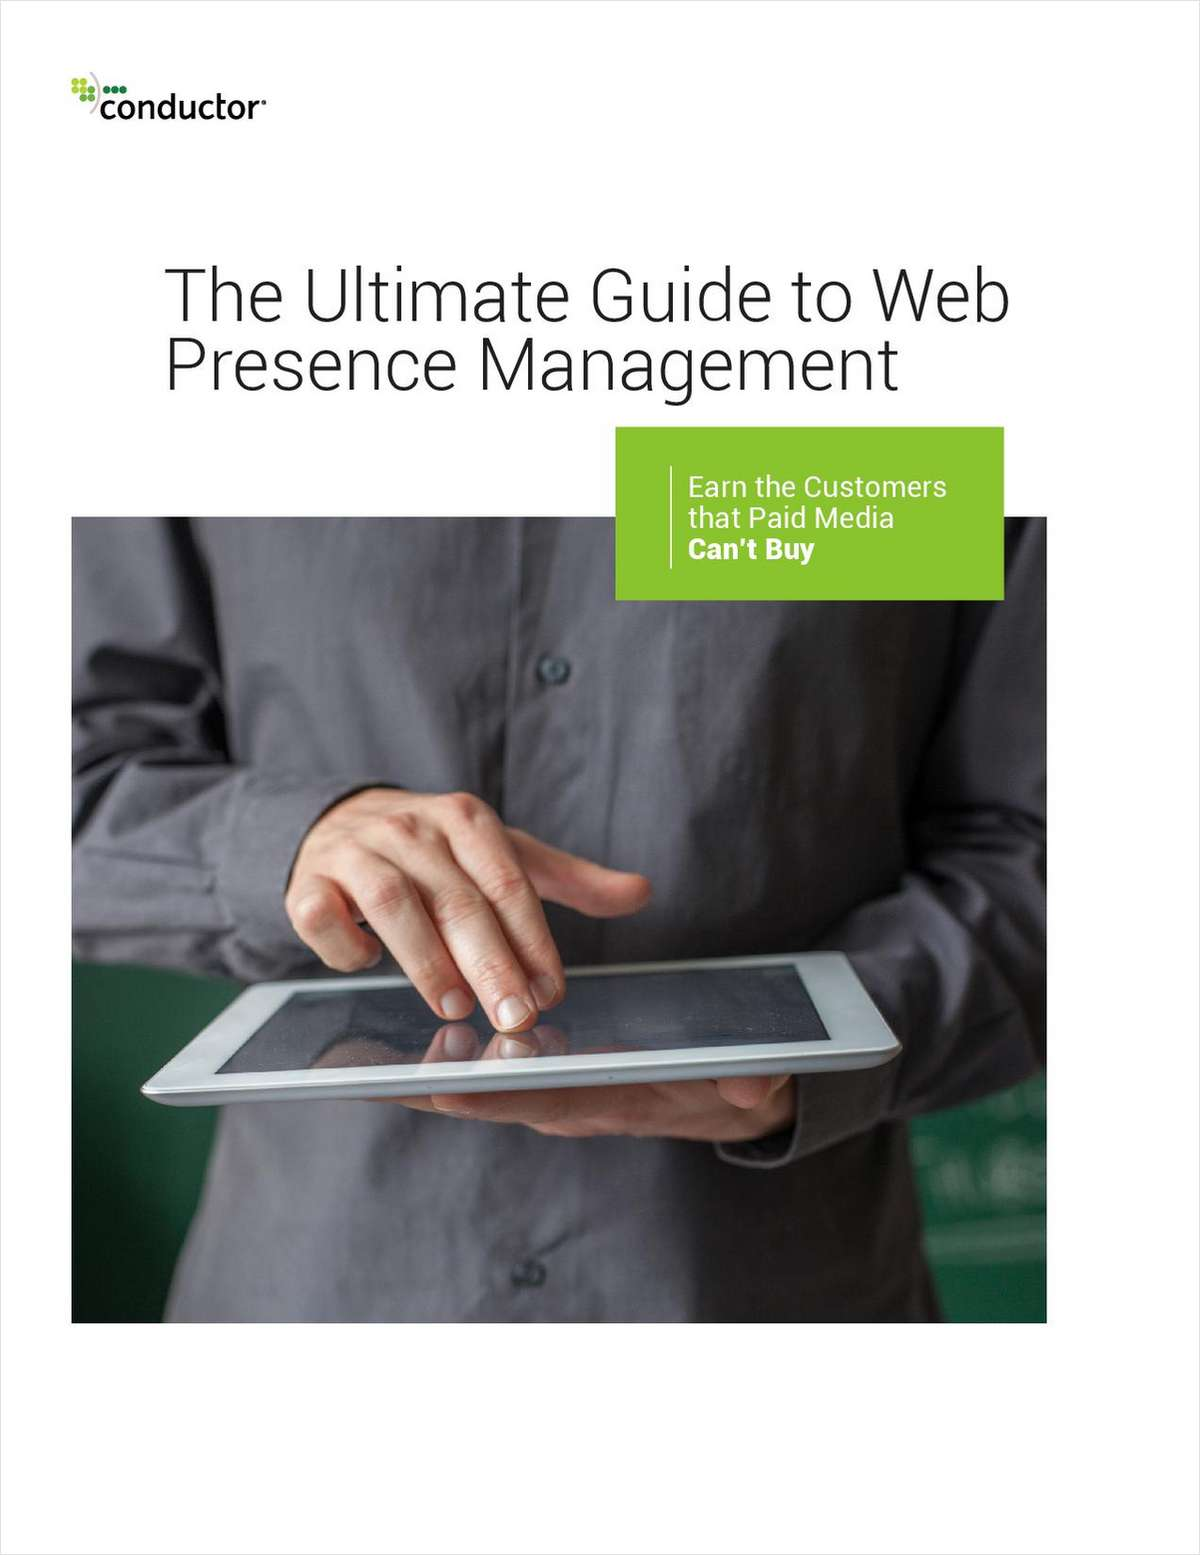 The Ultimate Guide to Web Presence Management